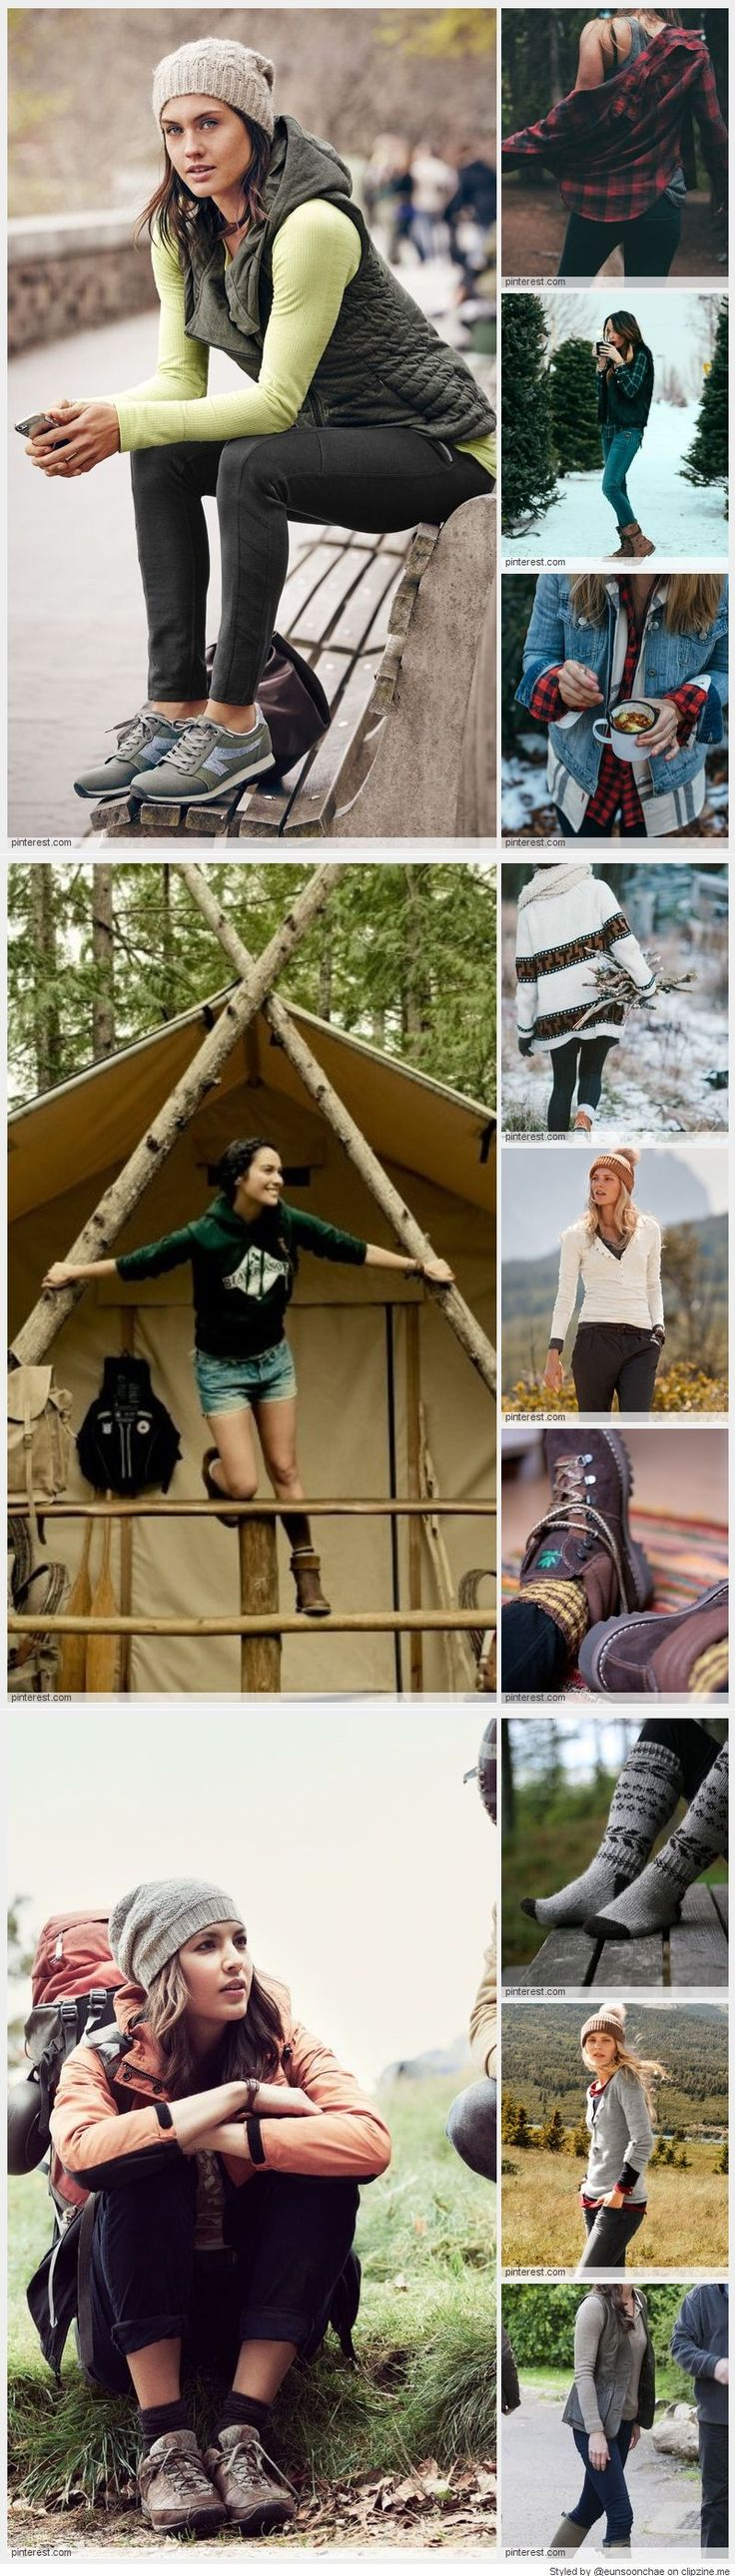 Camping Outfits